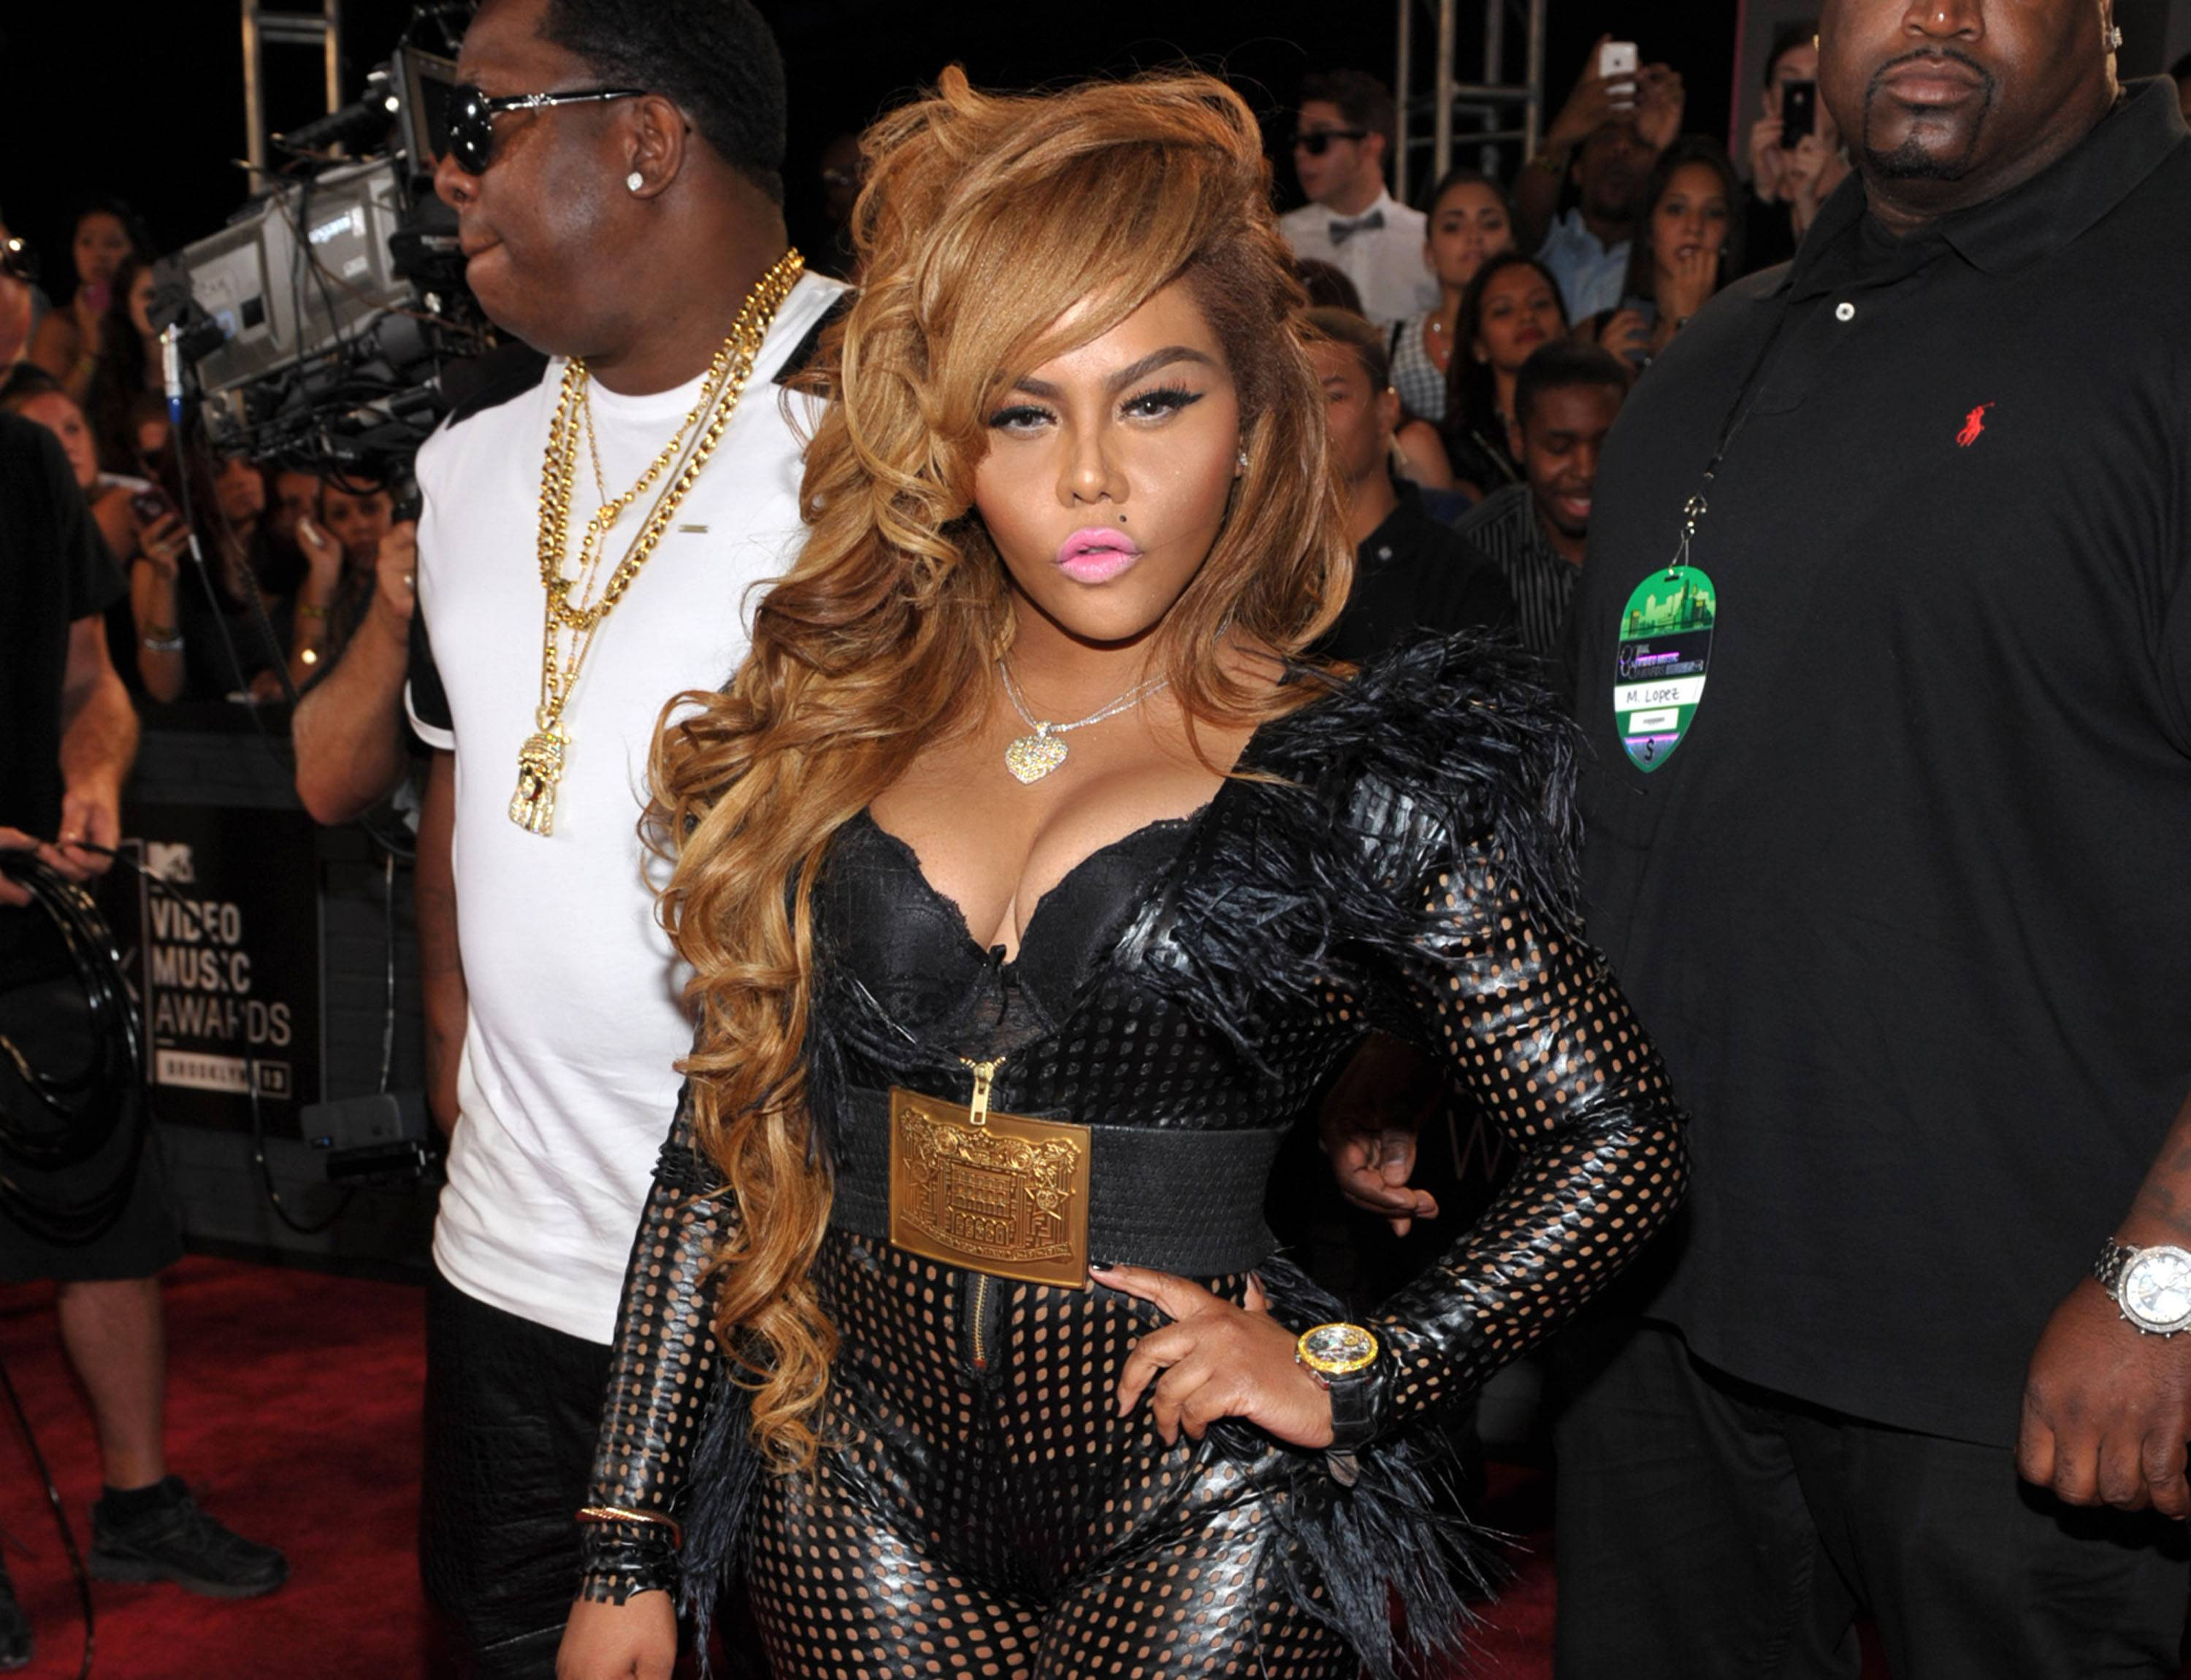 Lil' Kim is now a mother.